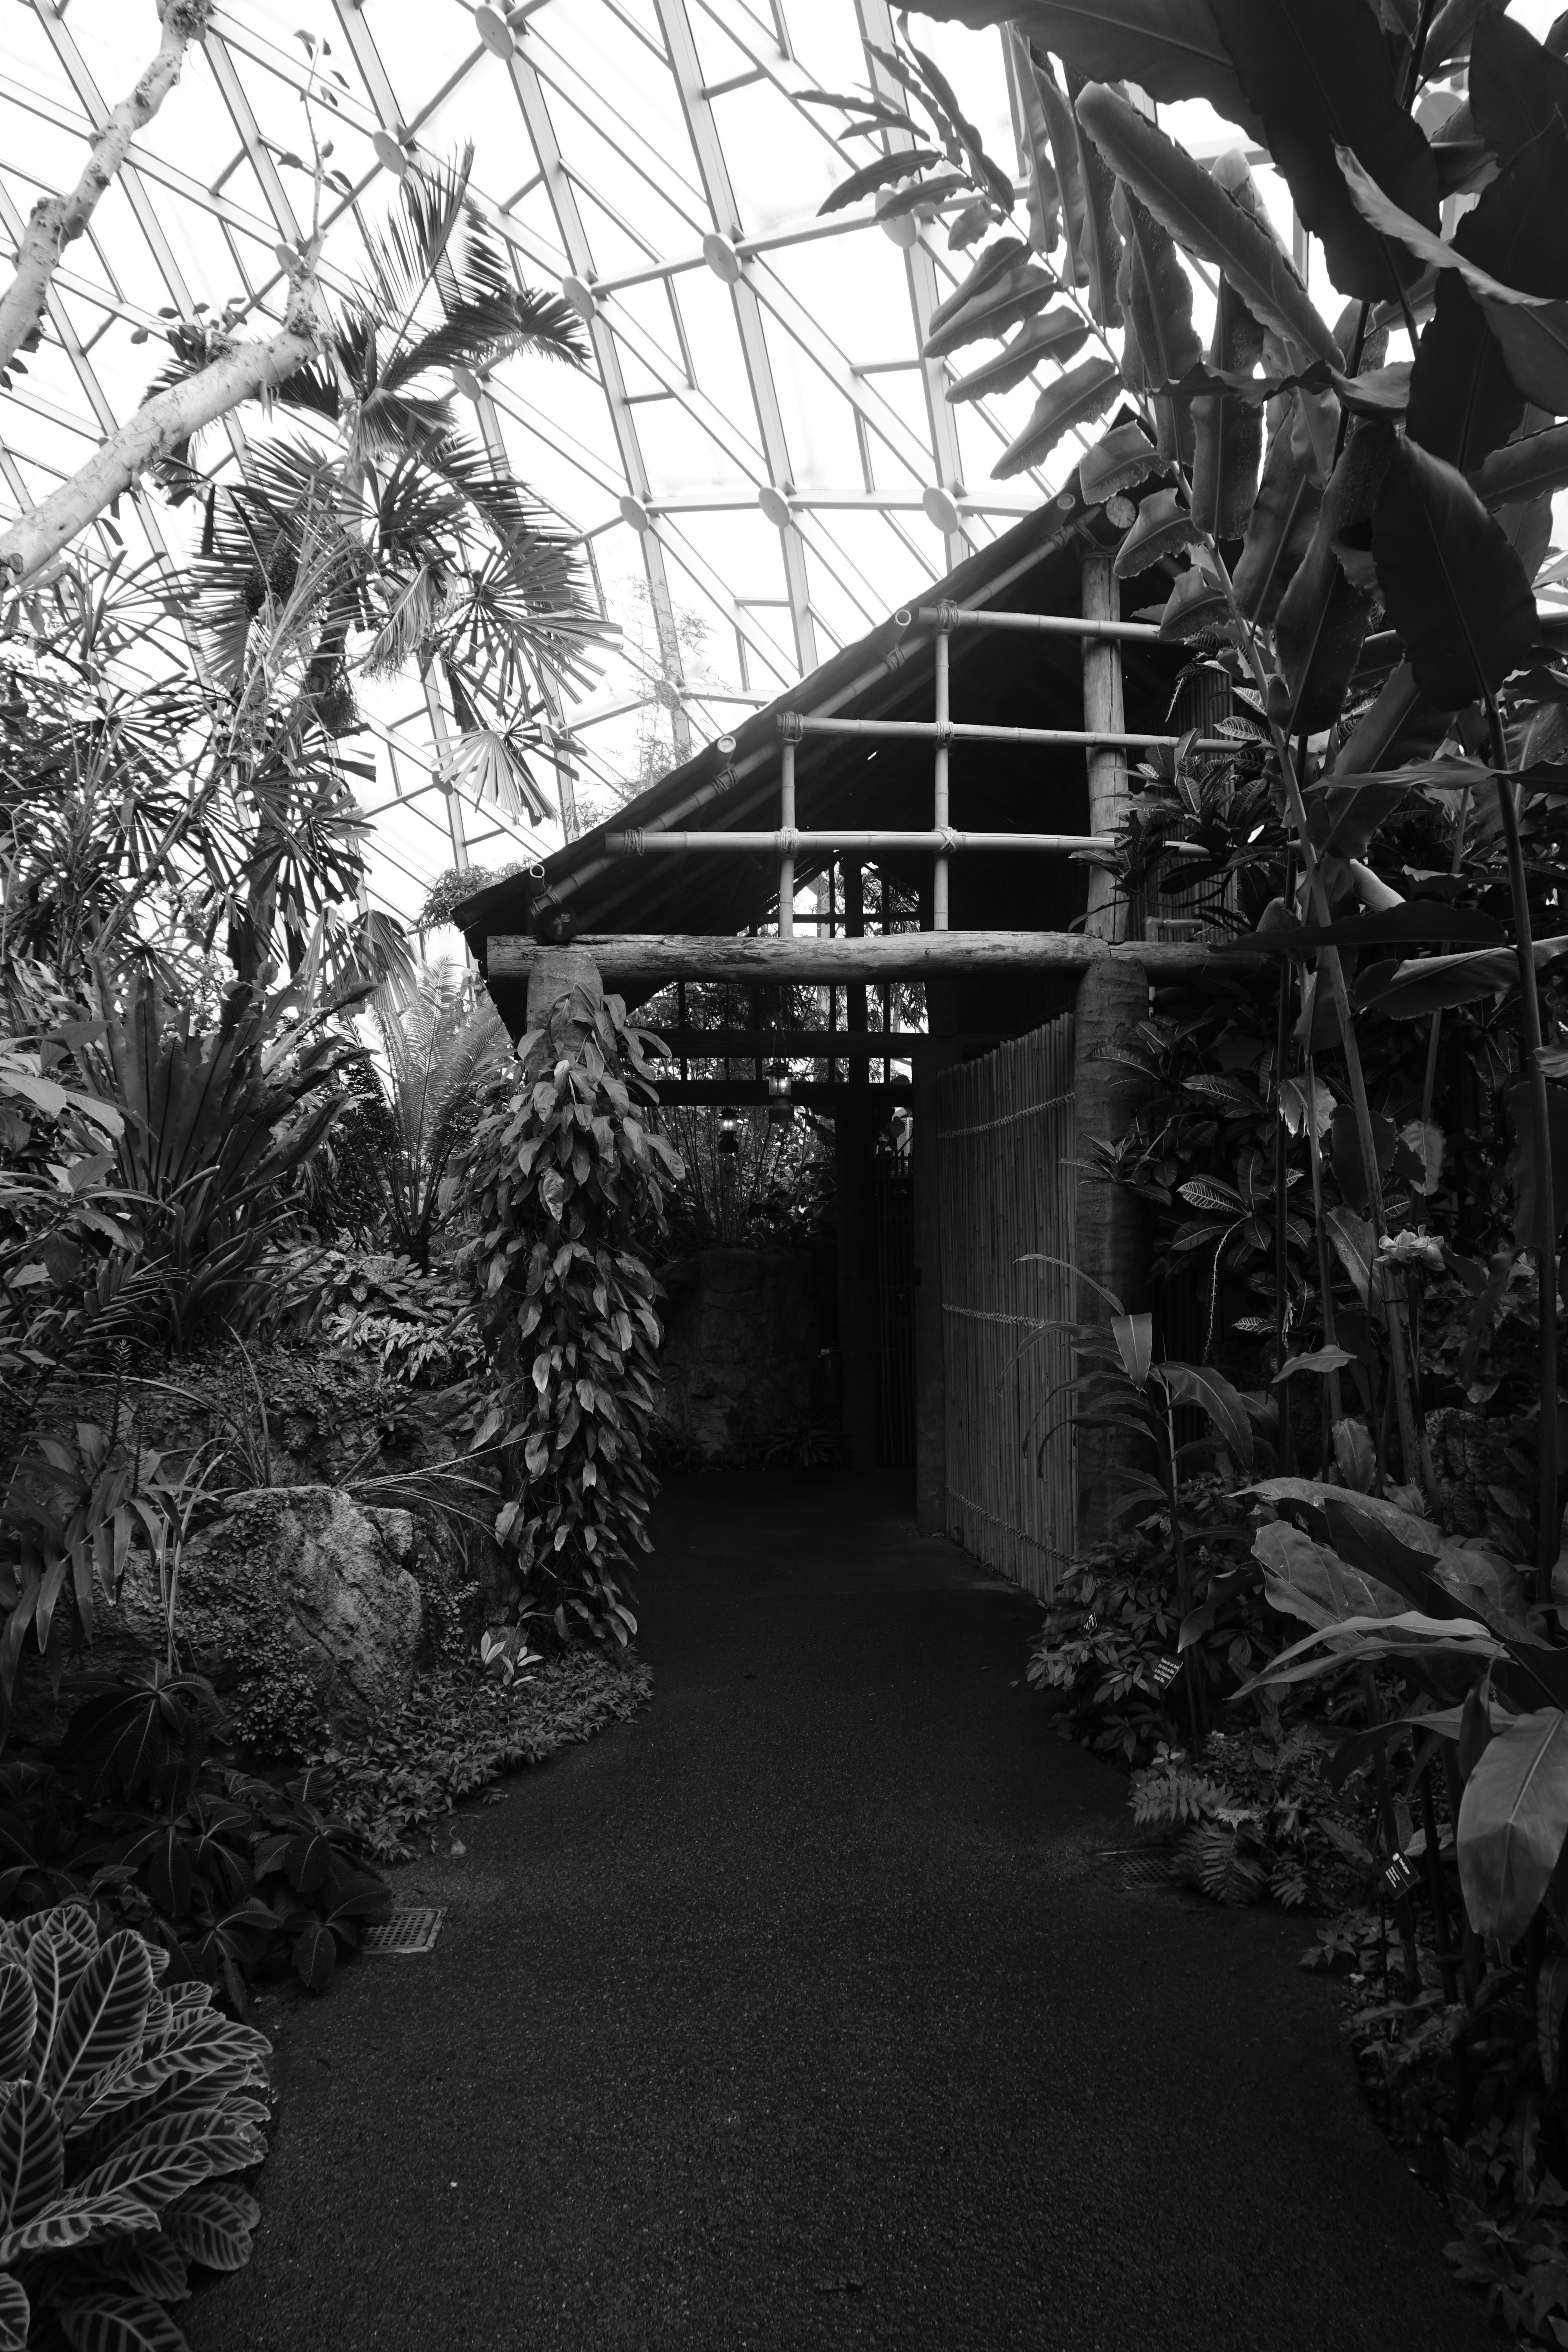 Variety of Plants Grayscale Photo, Architecture, Black and white, Building, Daytime, HQ Photo